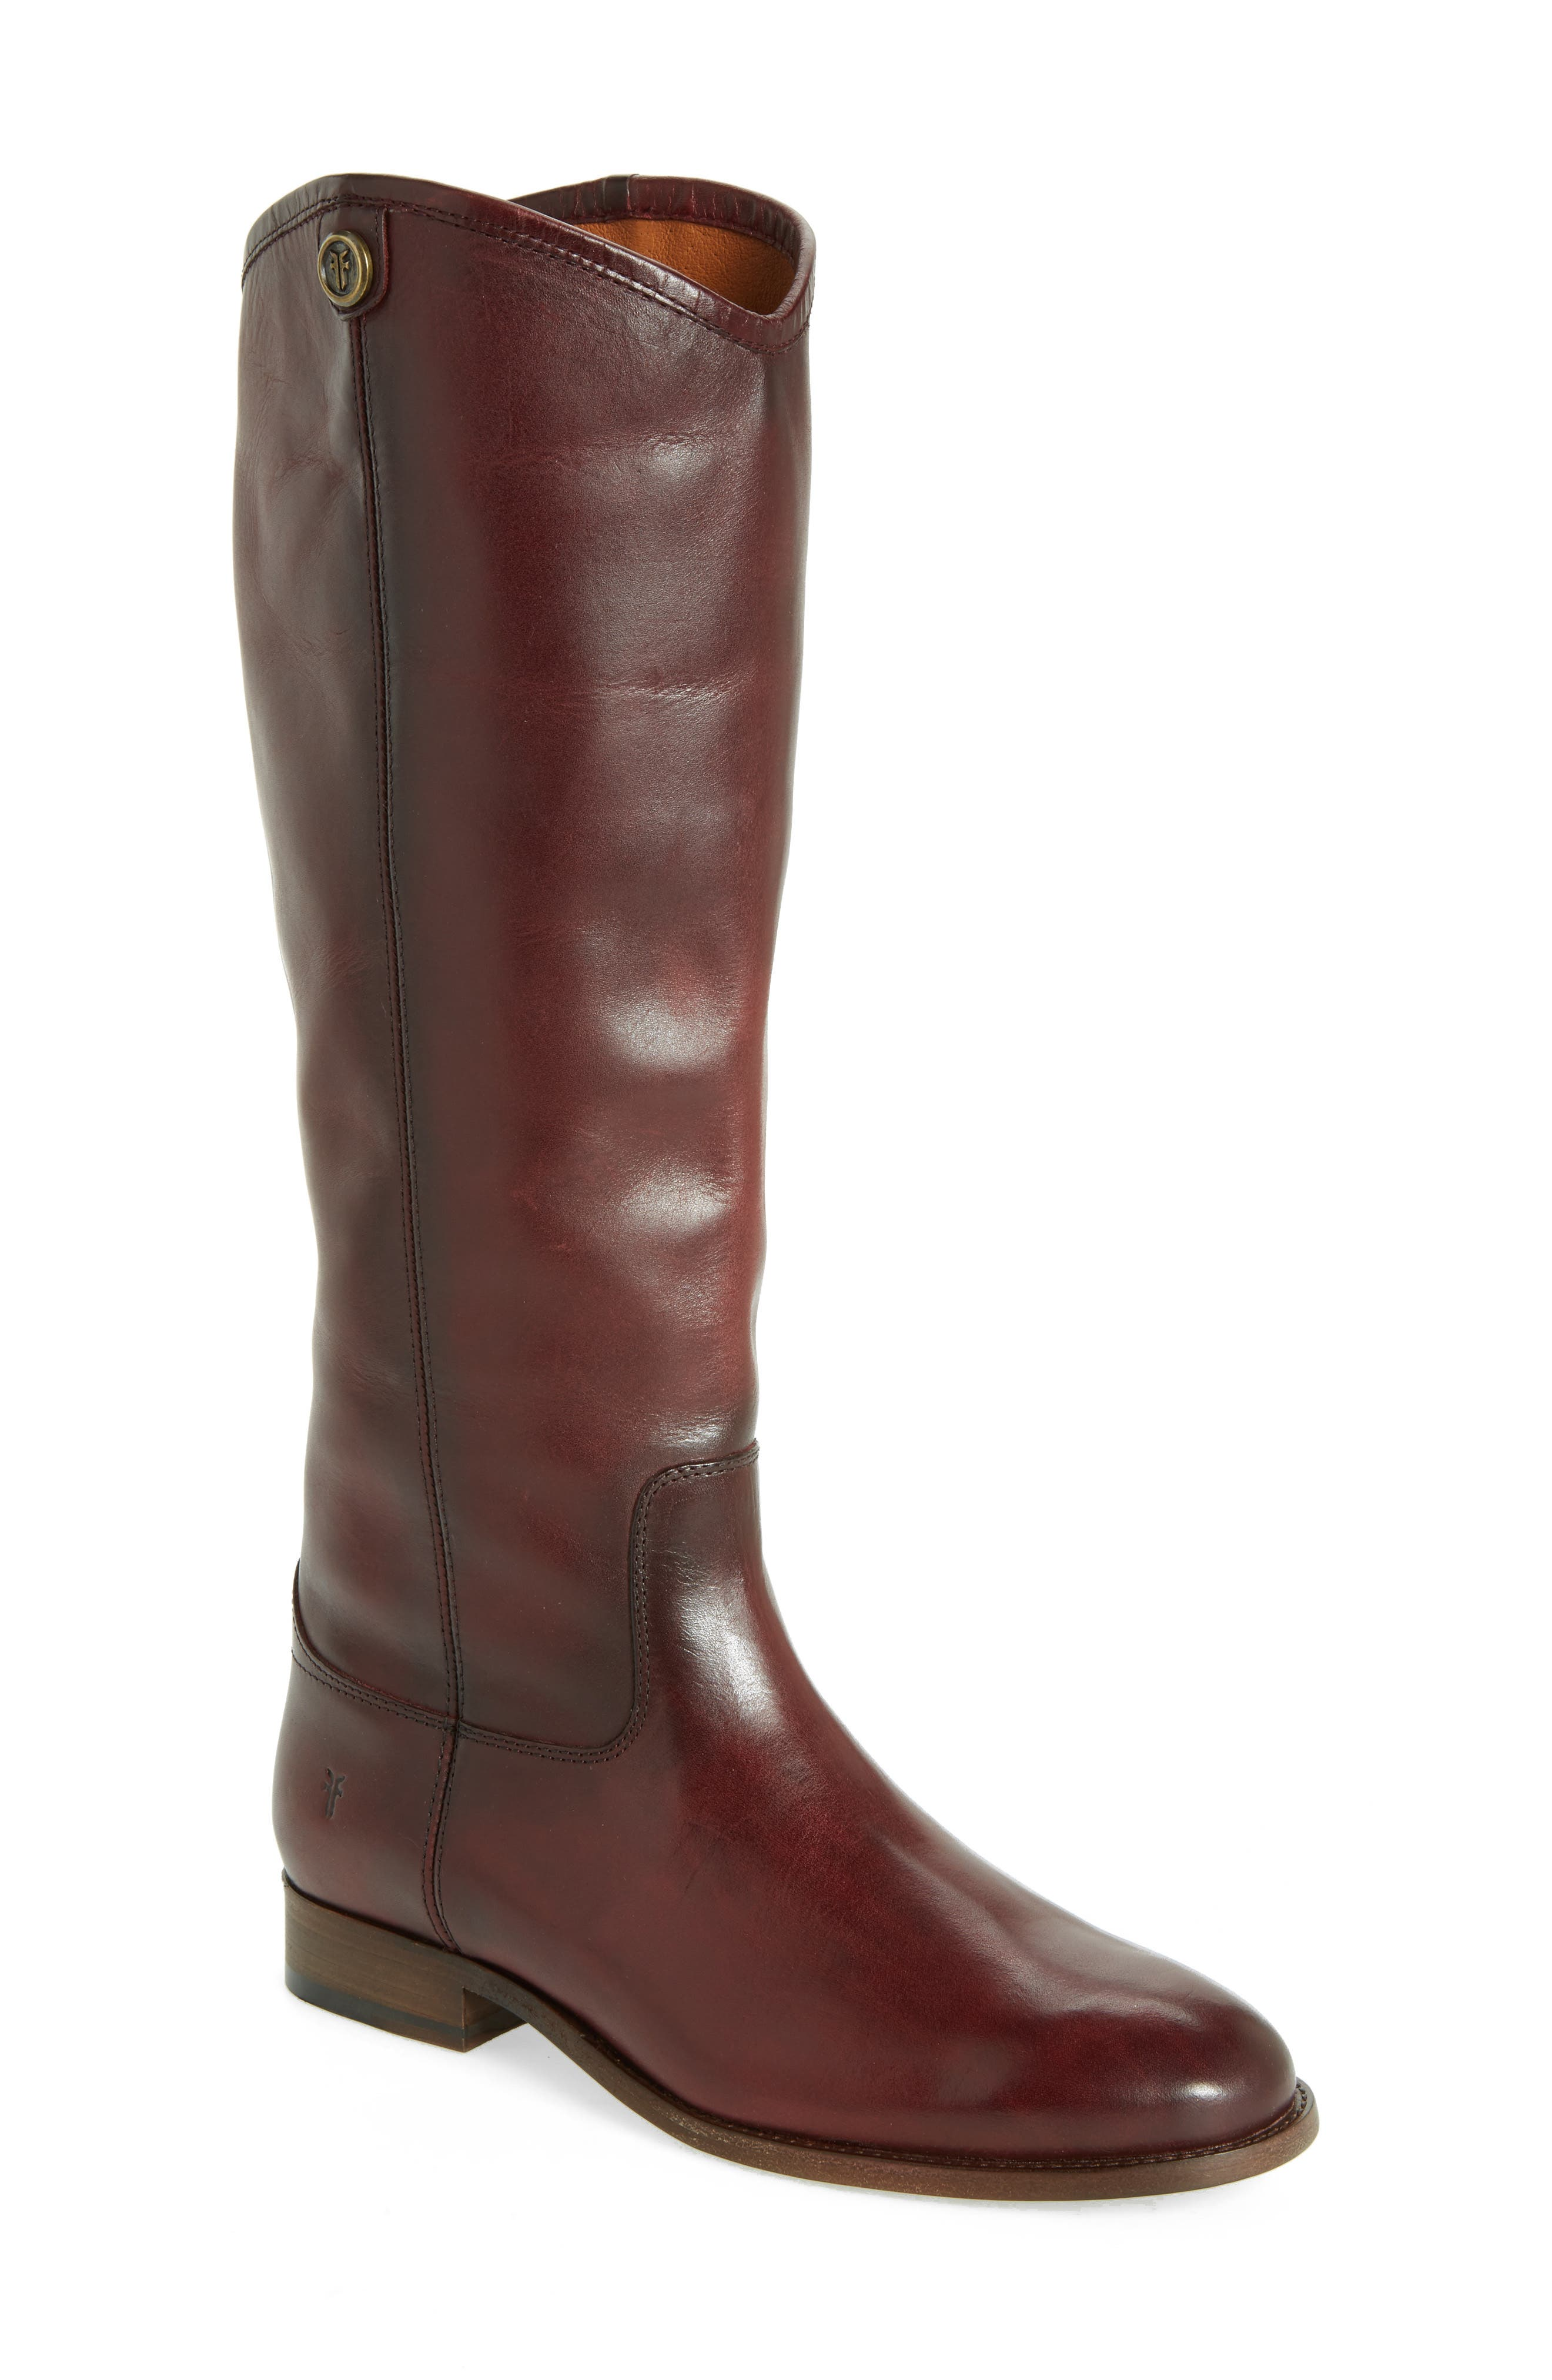 Frye Melissa Button 2 Knee High Boot Regular Calf- Burgundy